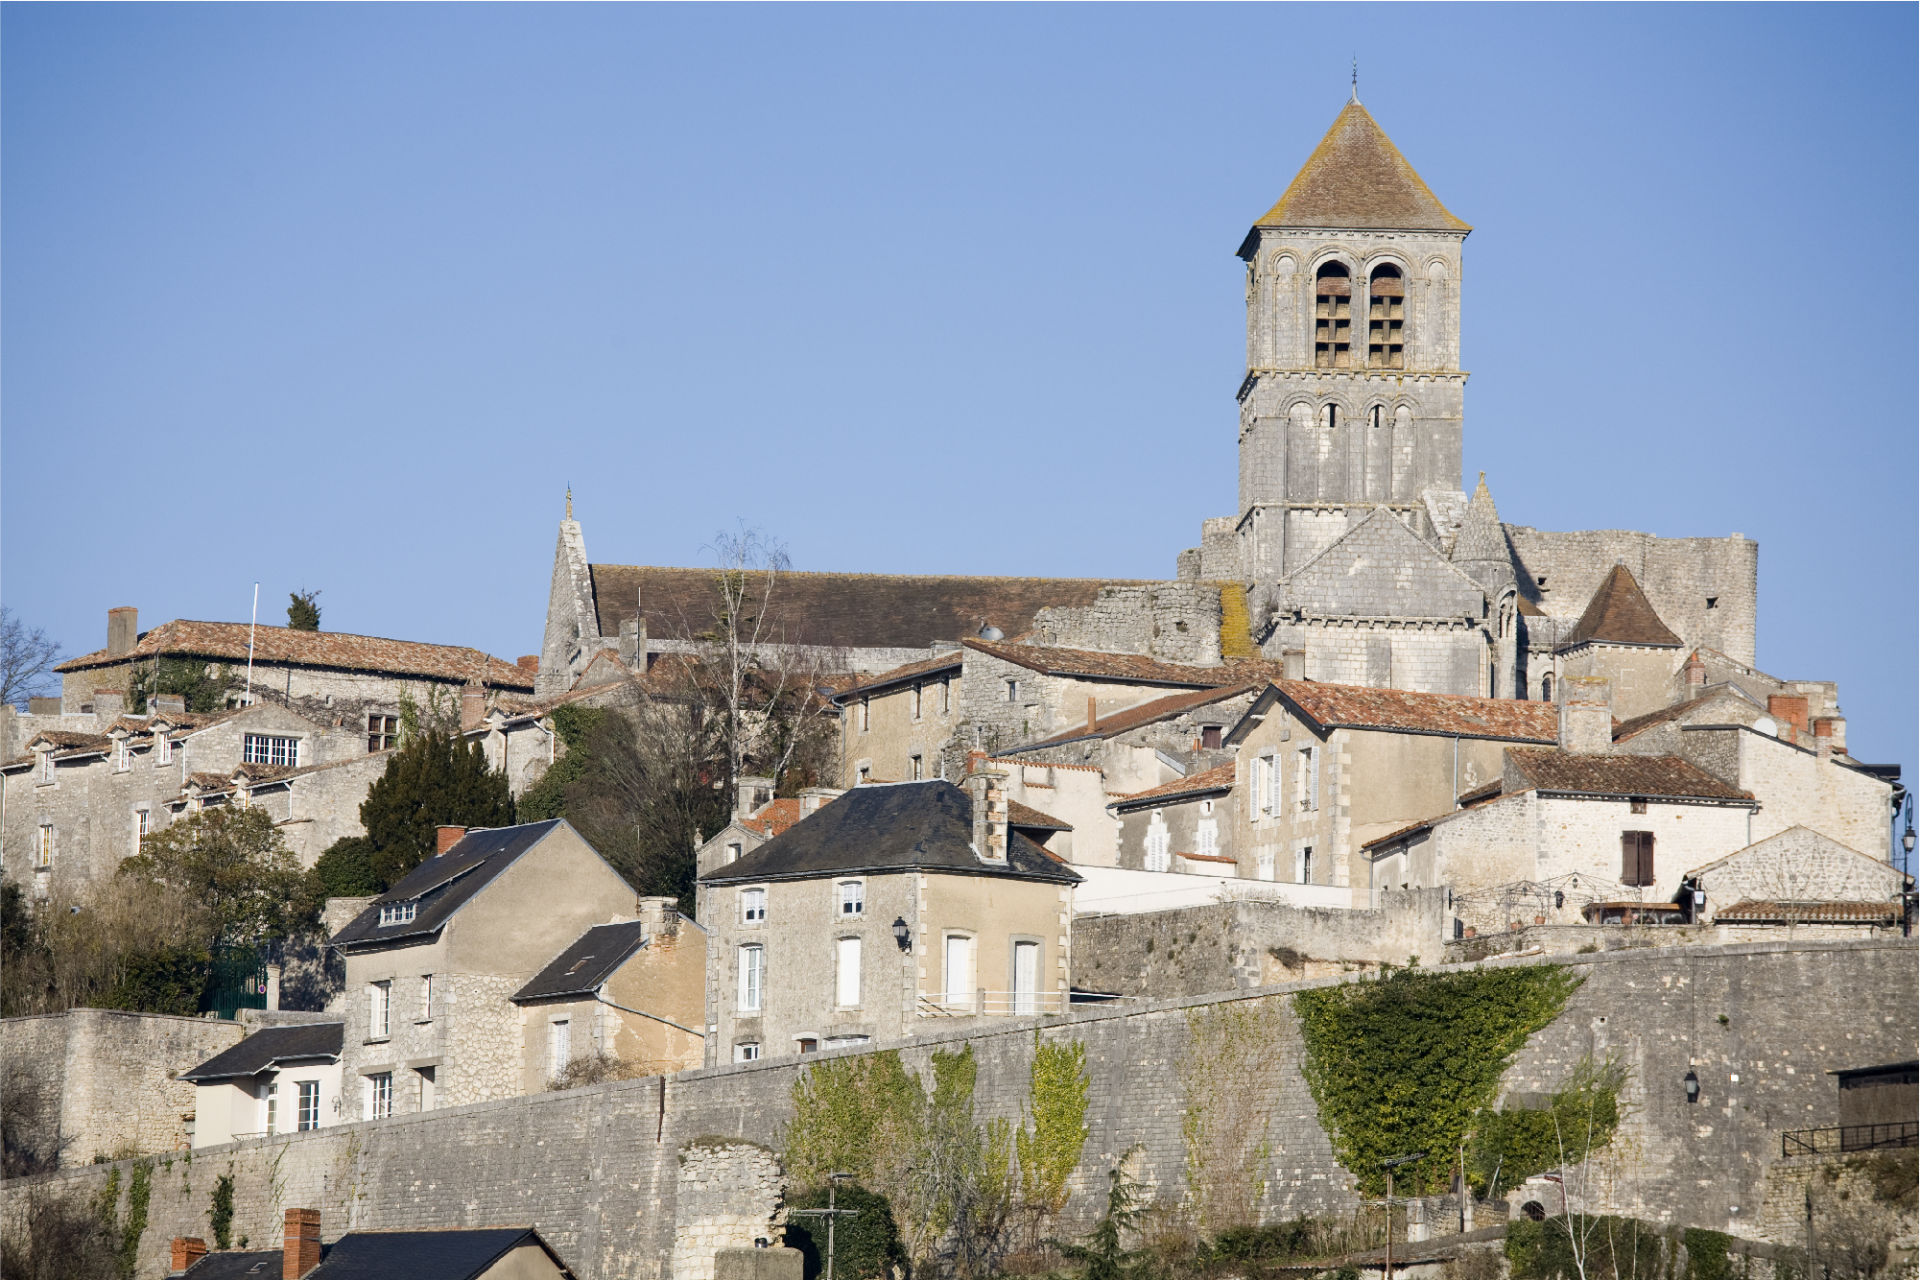 Explore The Medieval Town Of Chauvigny